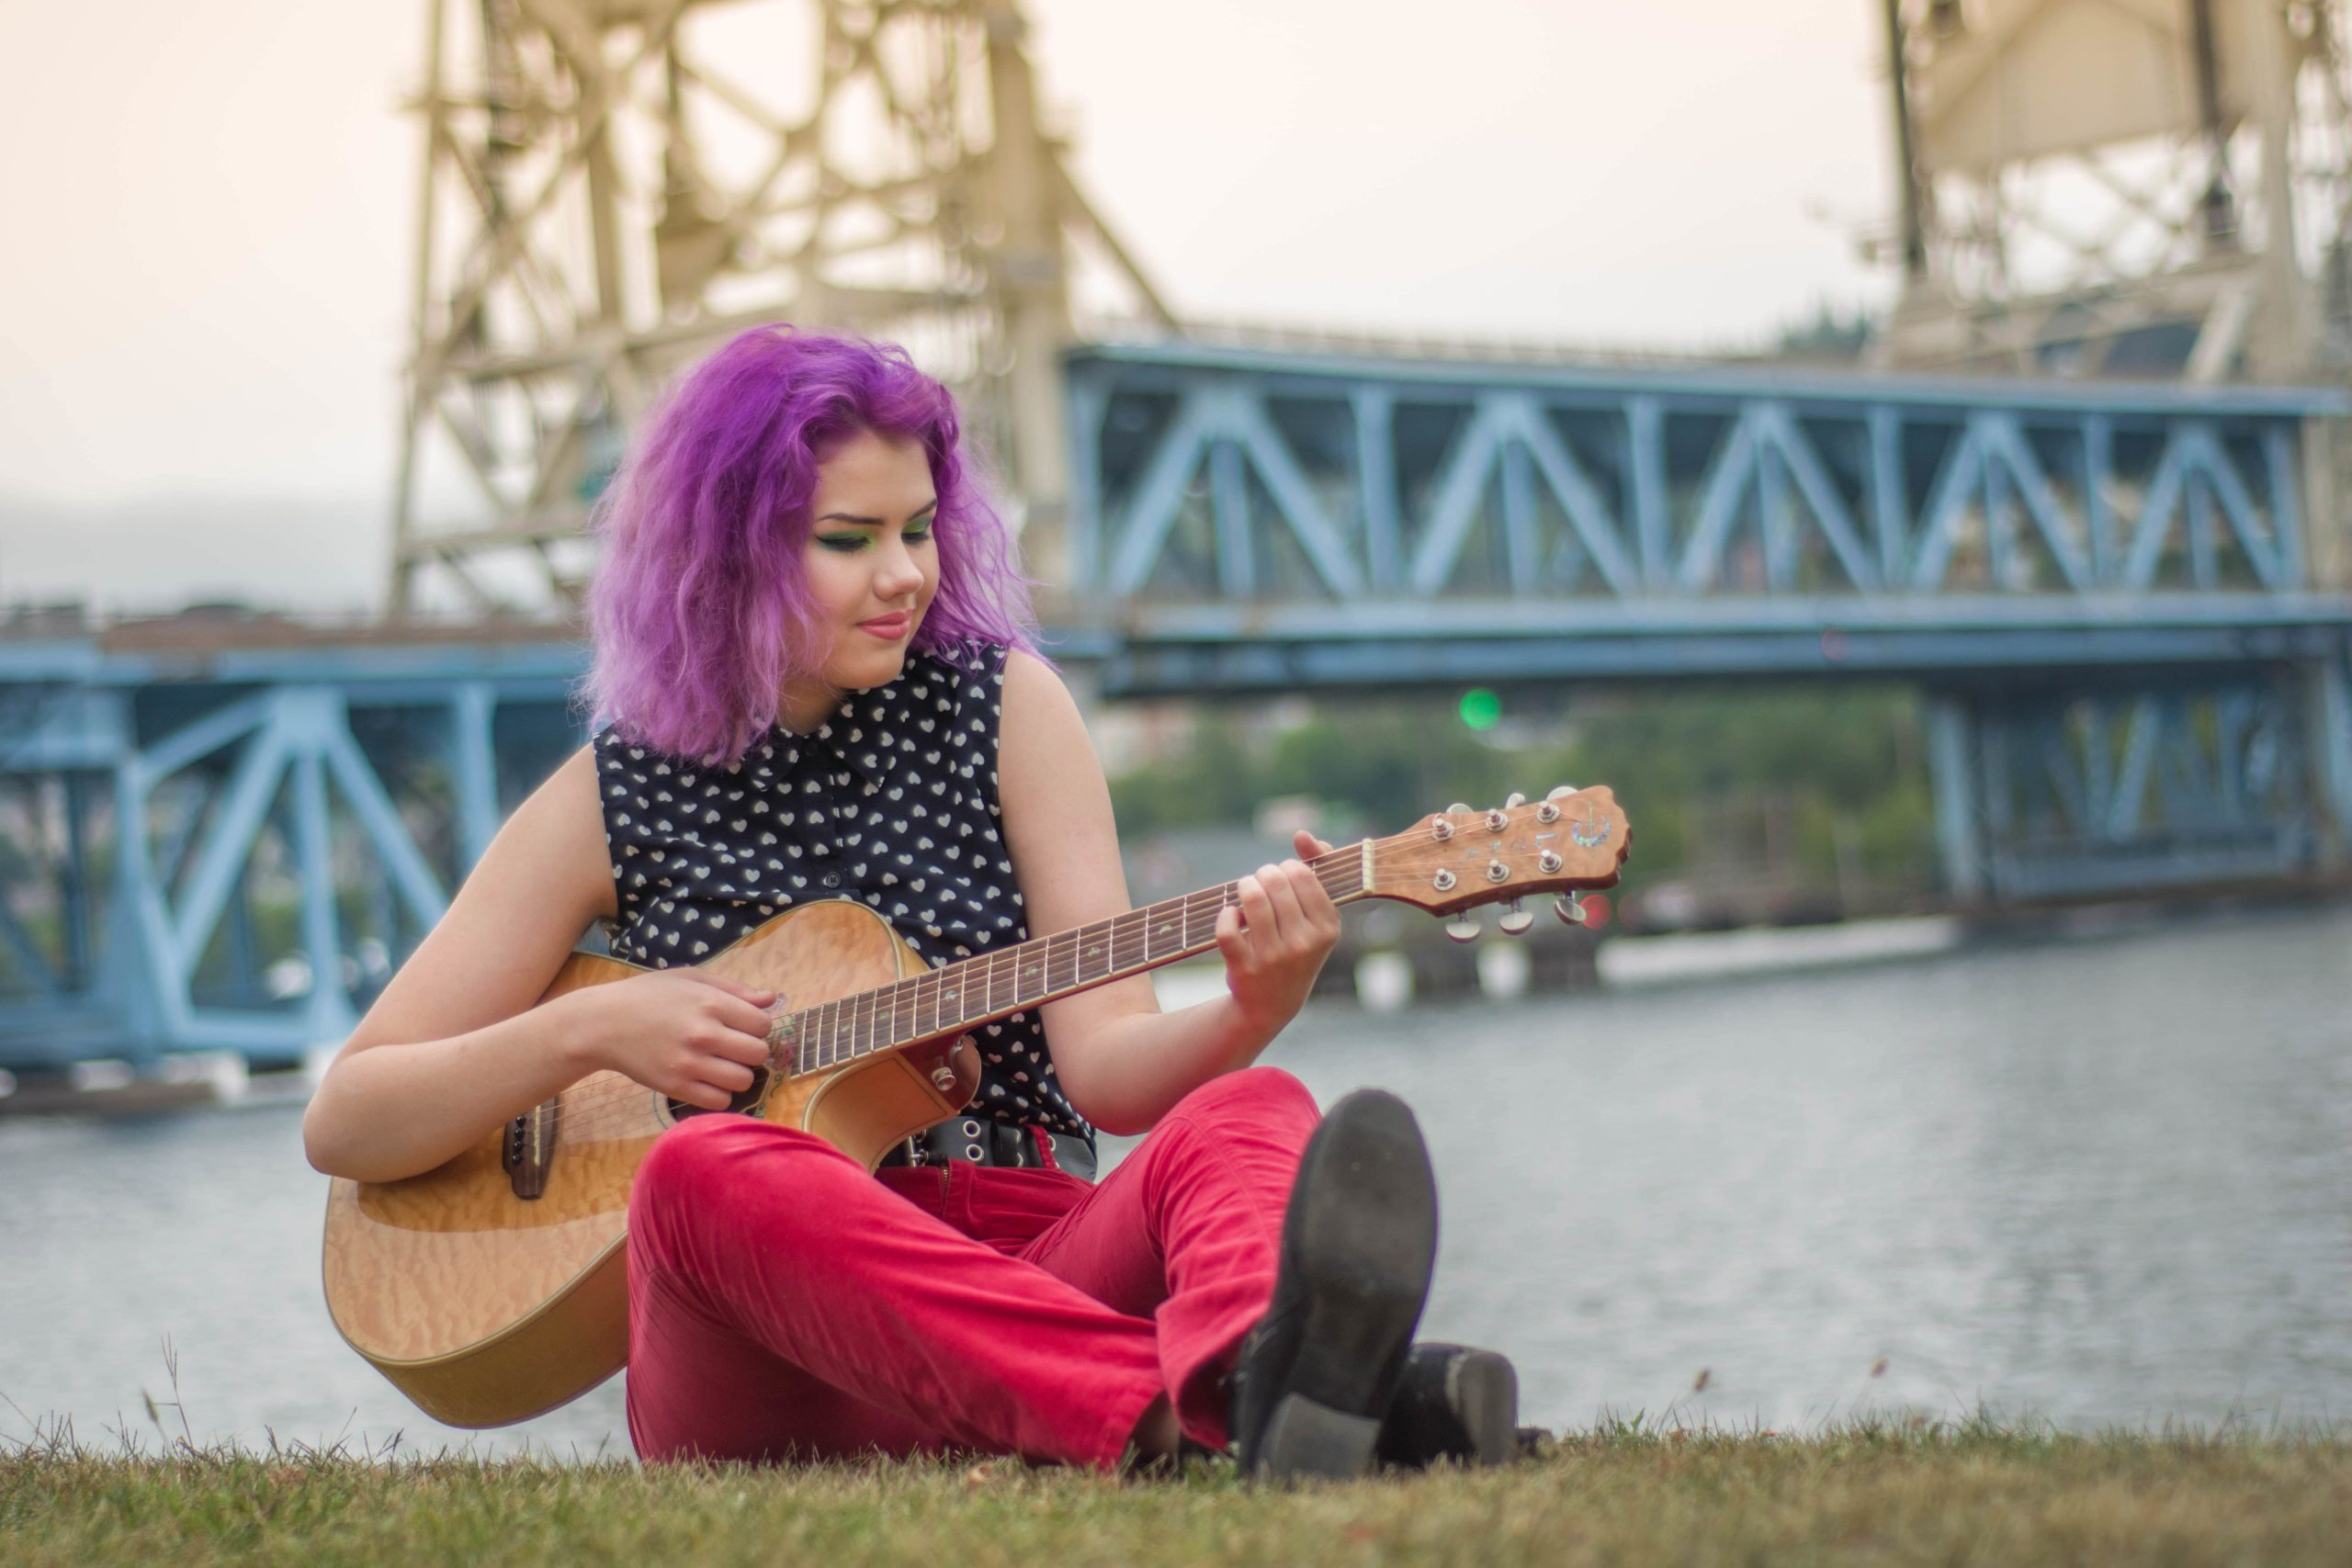 a woman playing guitar in front of a bright, with bright purple hair.